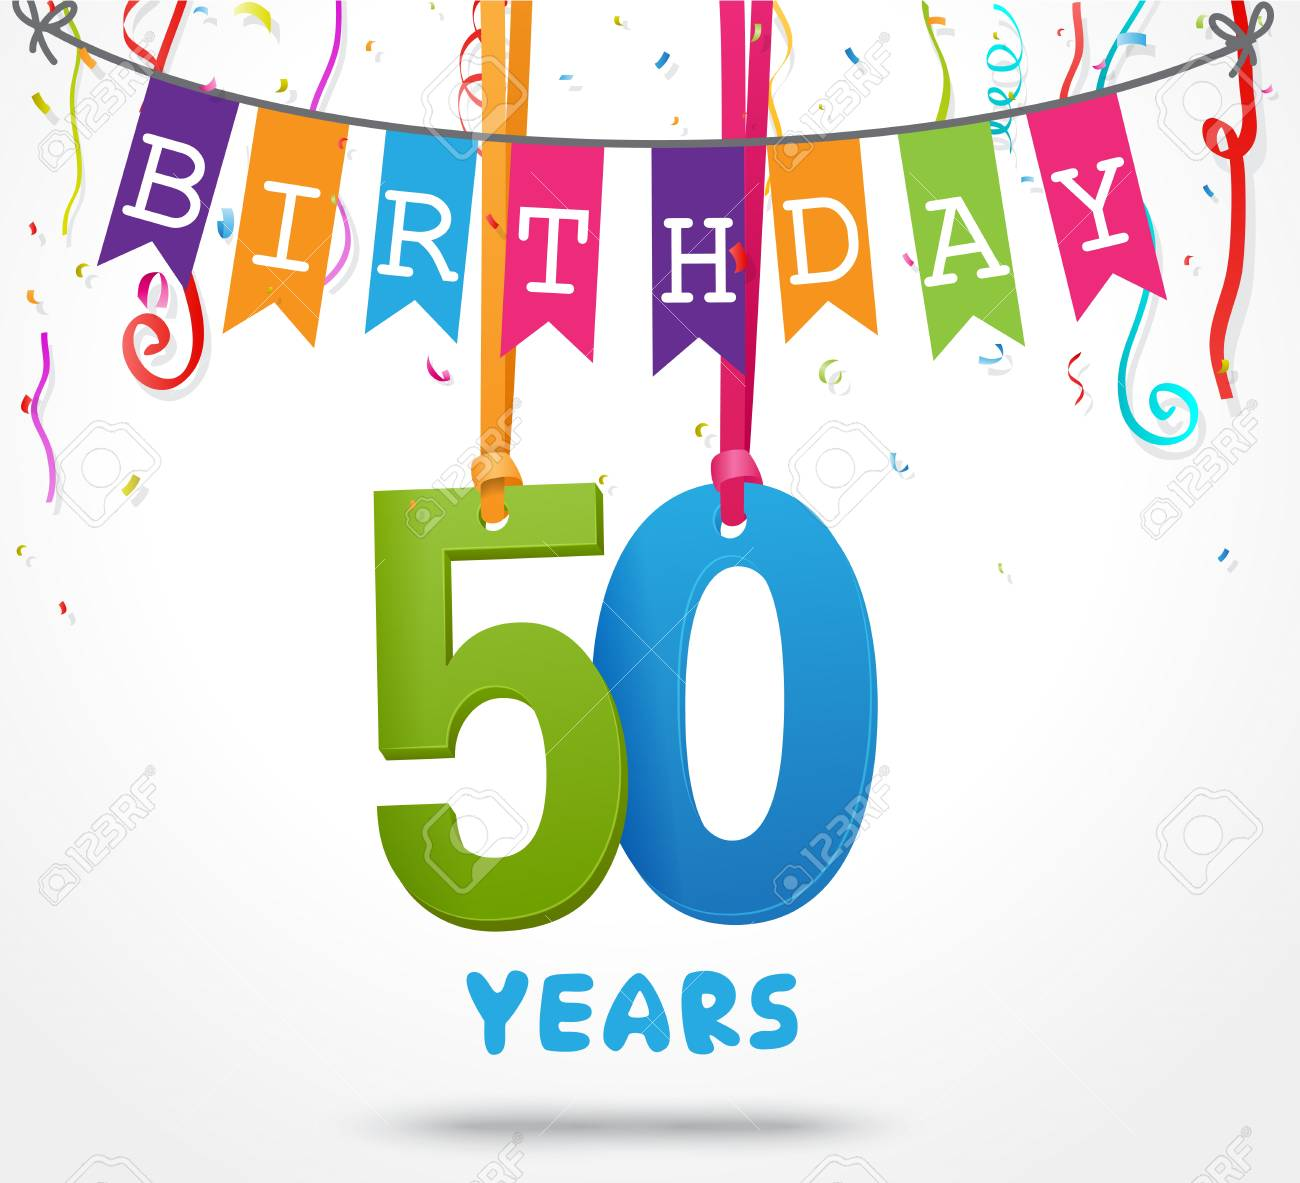 50 Years Birthday Celebration Greeting Card Design Stock Vector